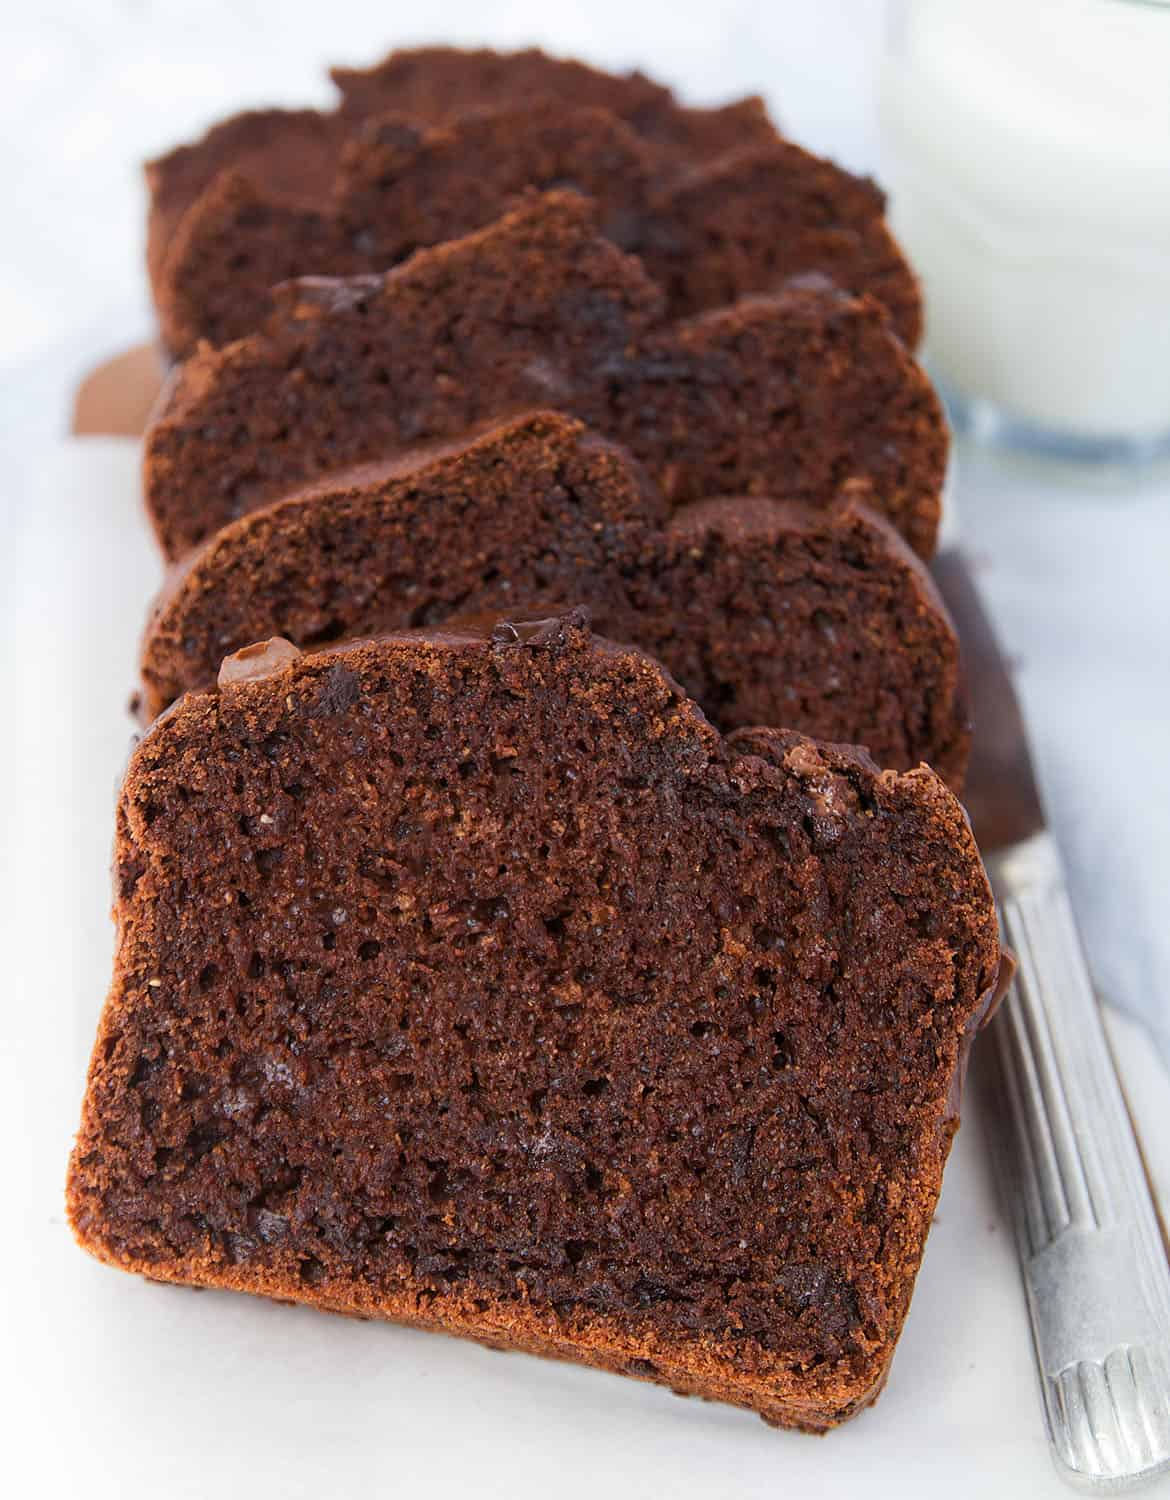 This healthy blender chocolate zucchini bread is low in sugar and packed with whole wheat flour andunsweetened cocoa powder. It's moist, chocolatey, loaded with nutrients and ready in no time.